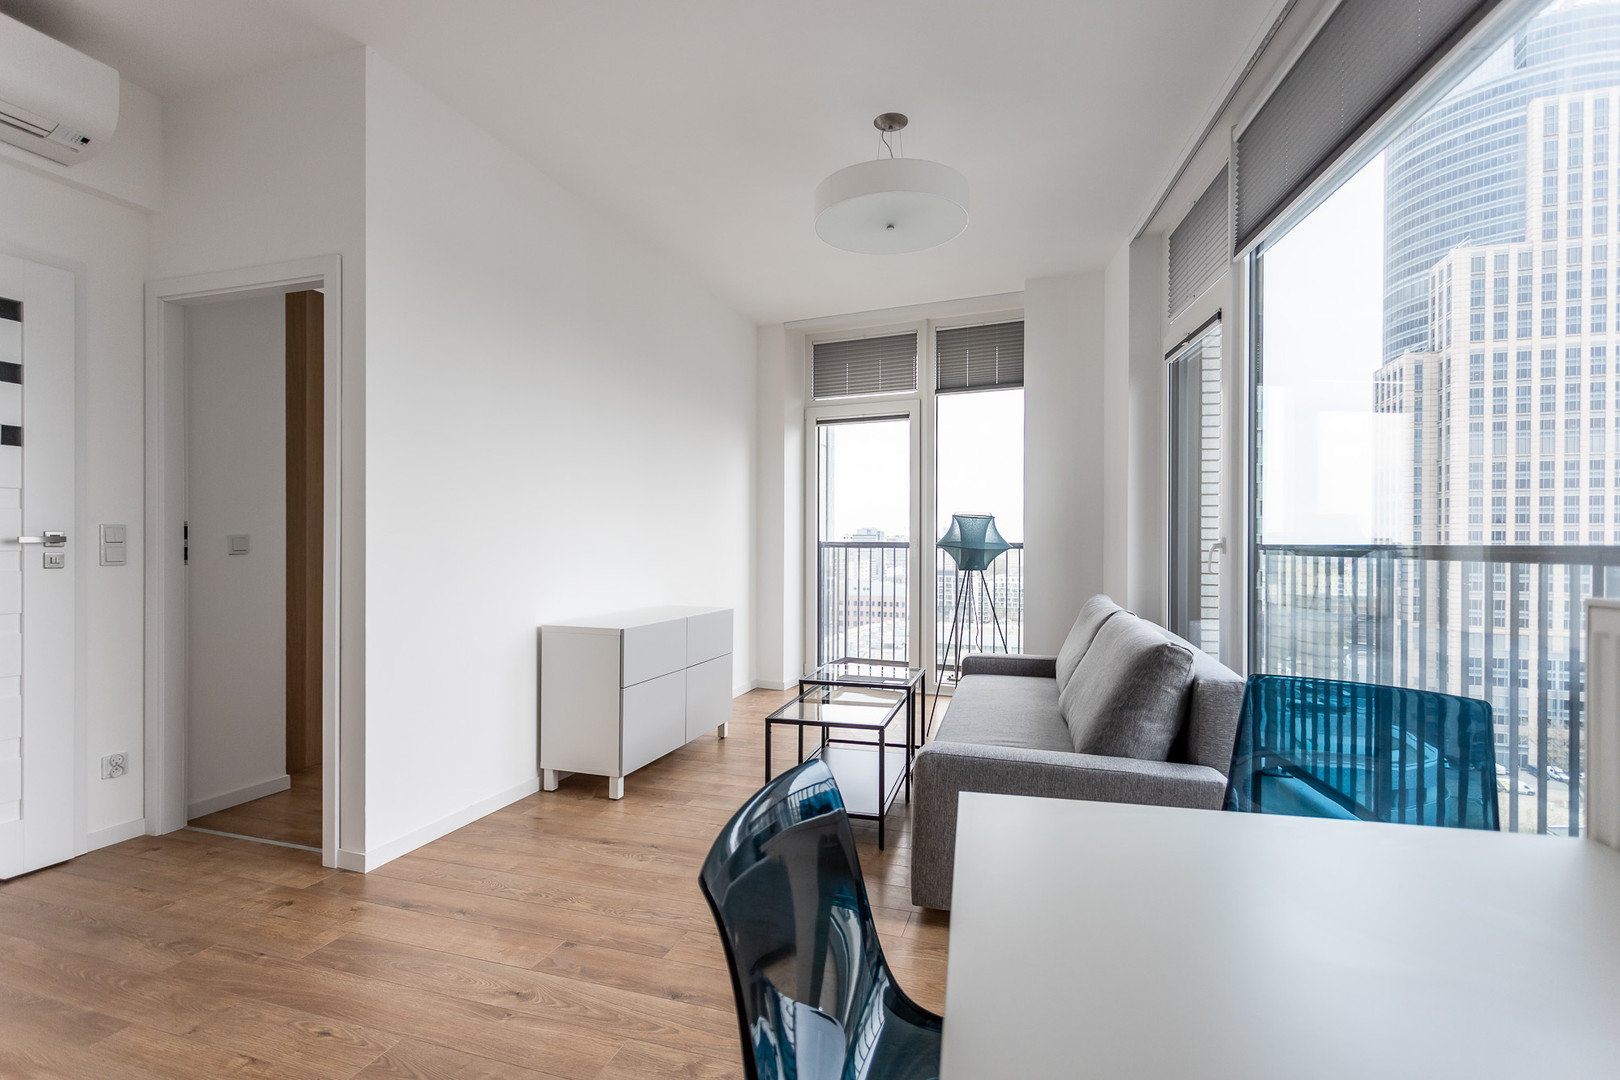 Warszawa Browary for rent with view13.jp